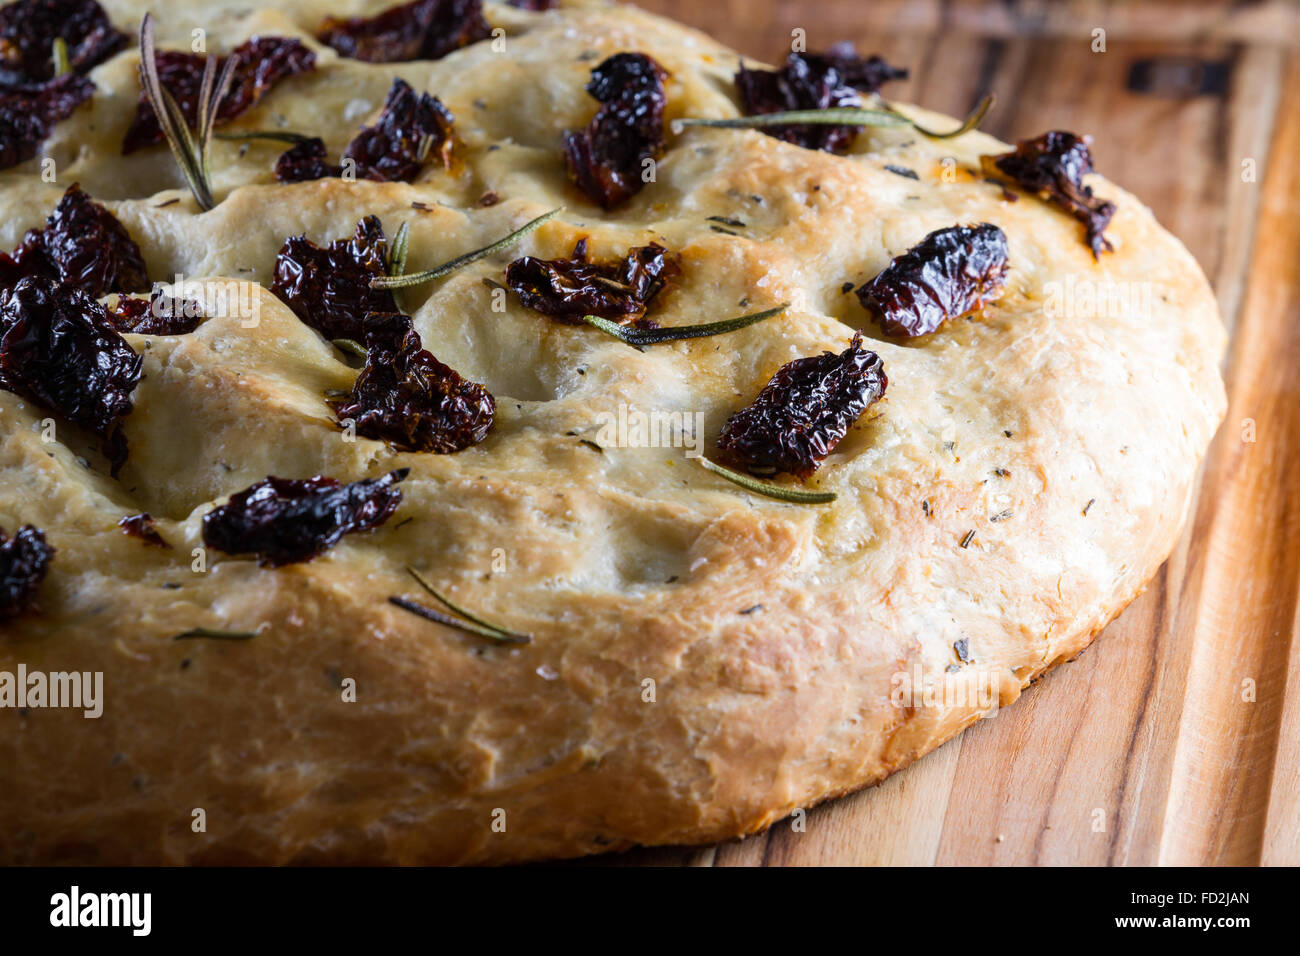 close up of a home made focaccia roll with sun dried tomatoes and fresh rosemary sprigs on top - Stock Image